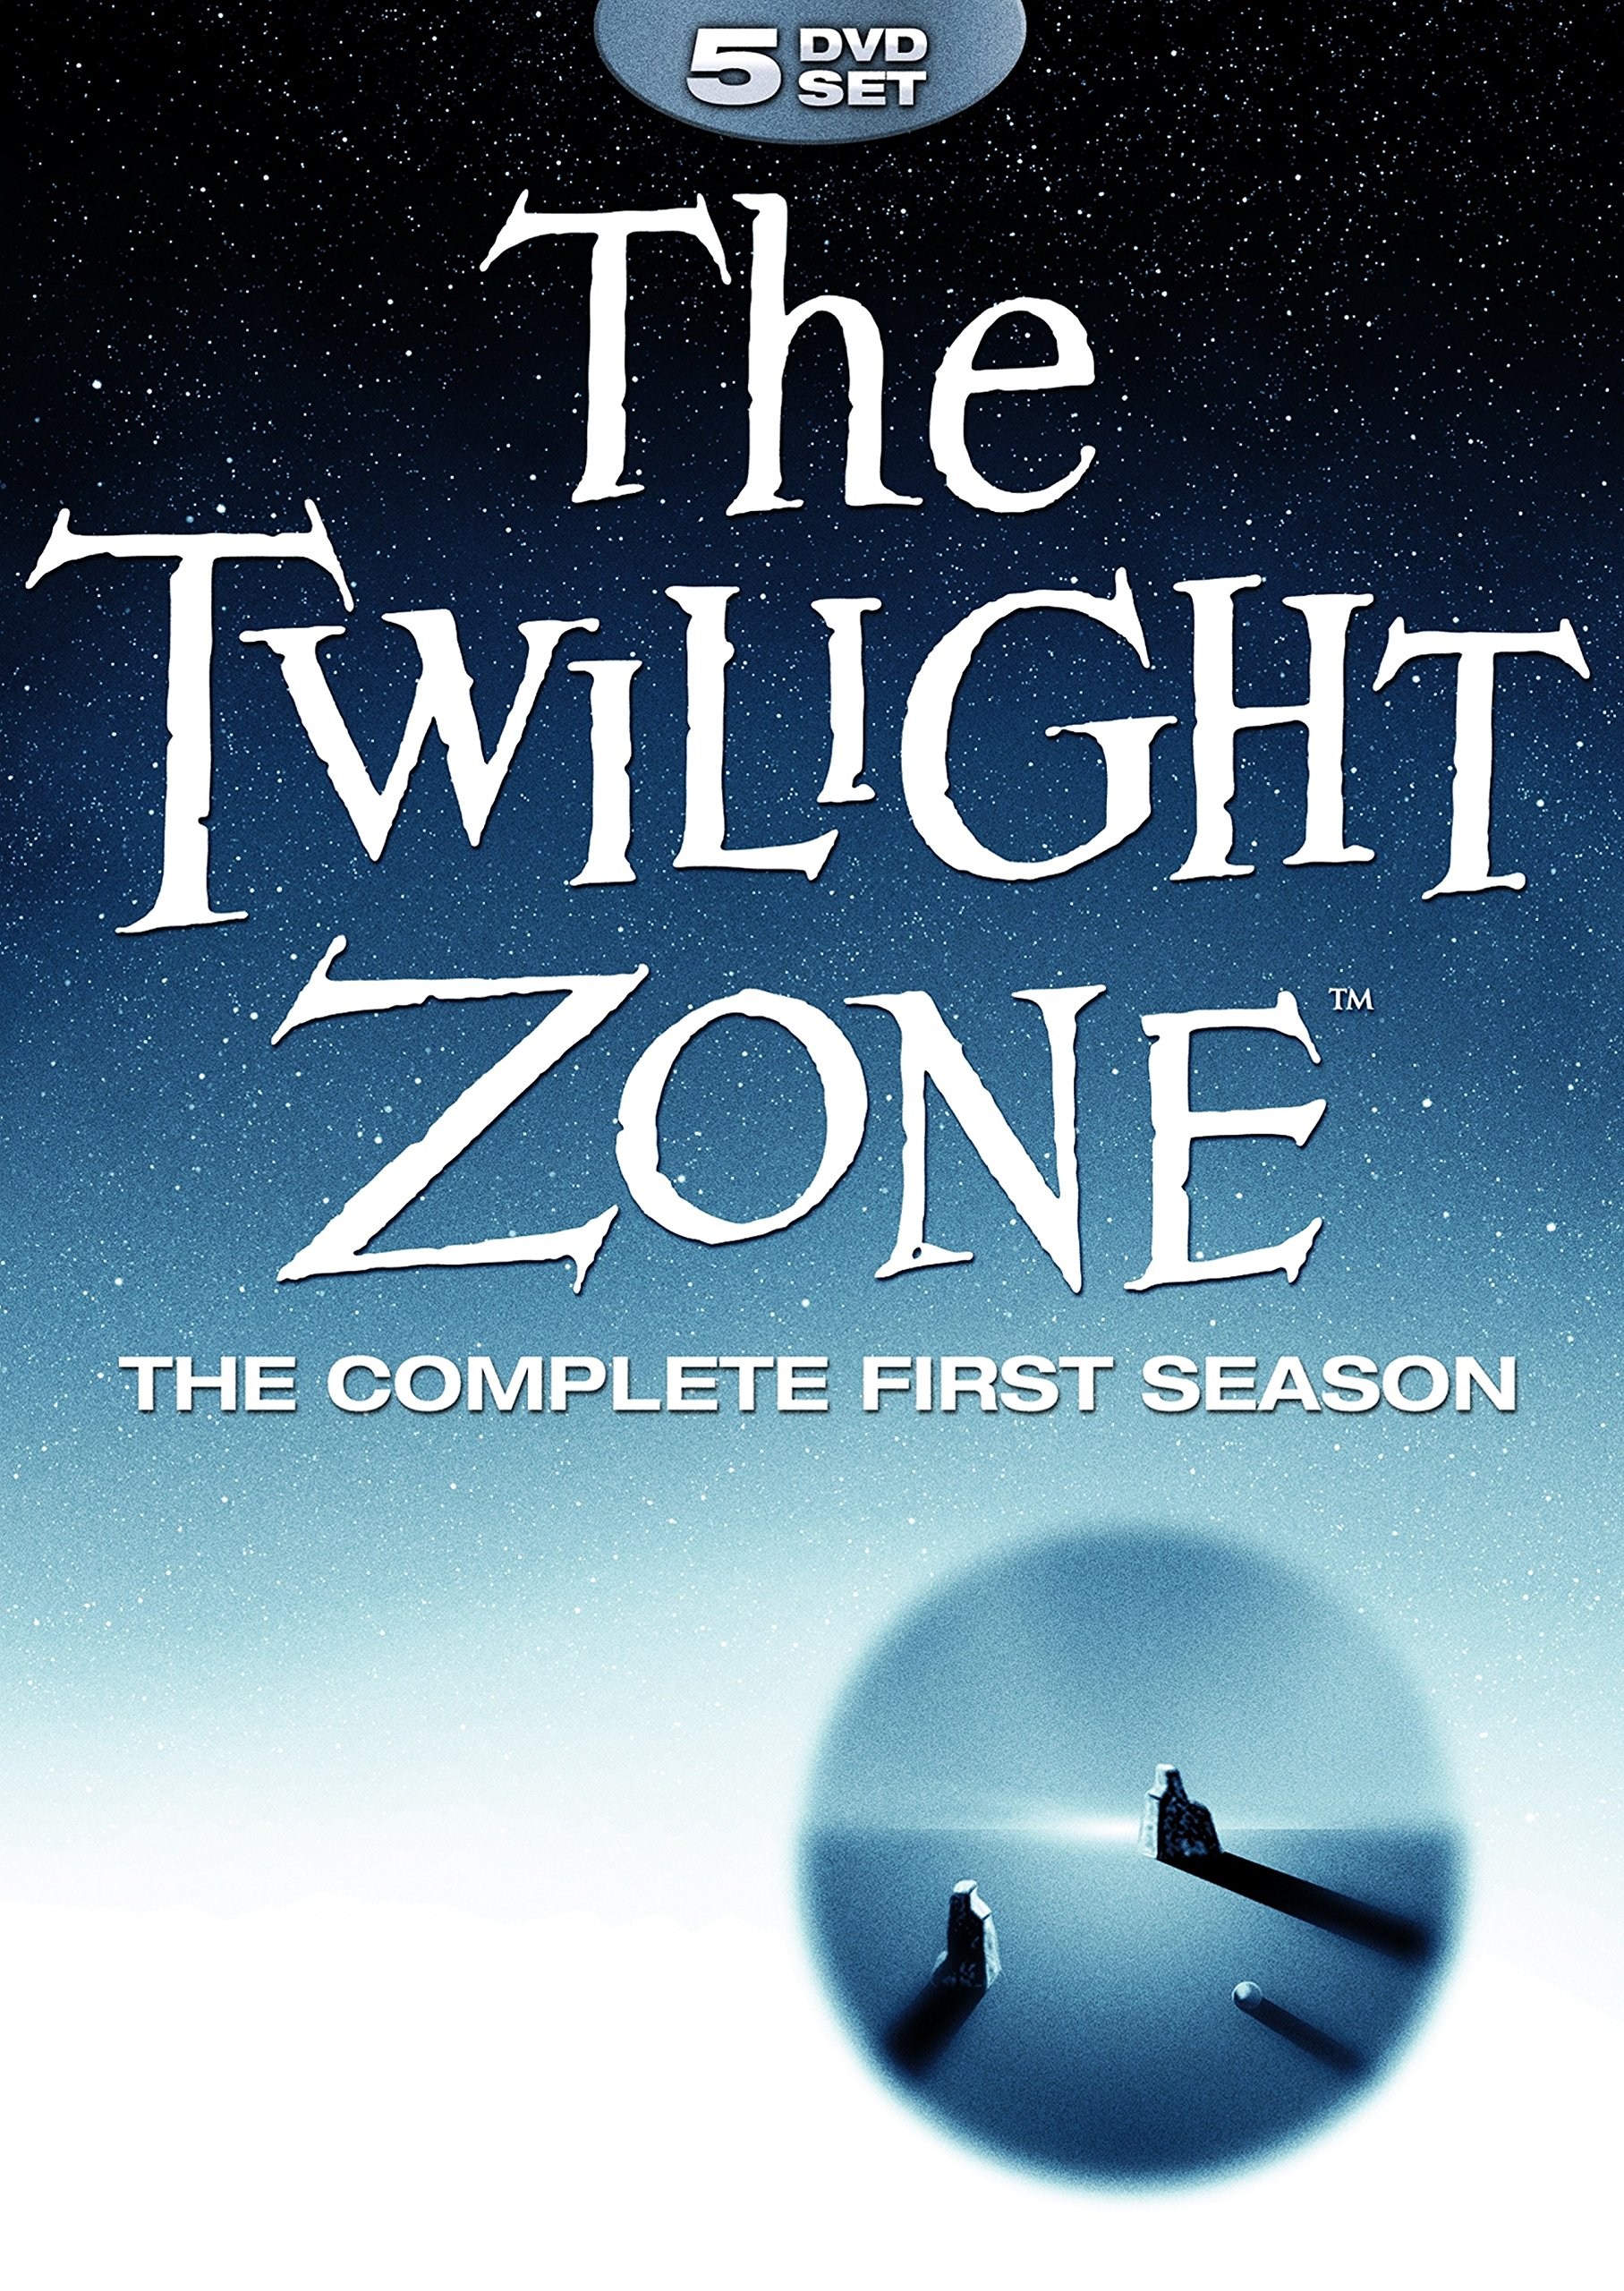 DVD : The Twilight Zone: Complete First Season (Full Frame, Boxed Set, Amaray Case, 5PC)